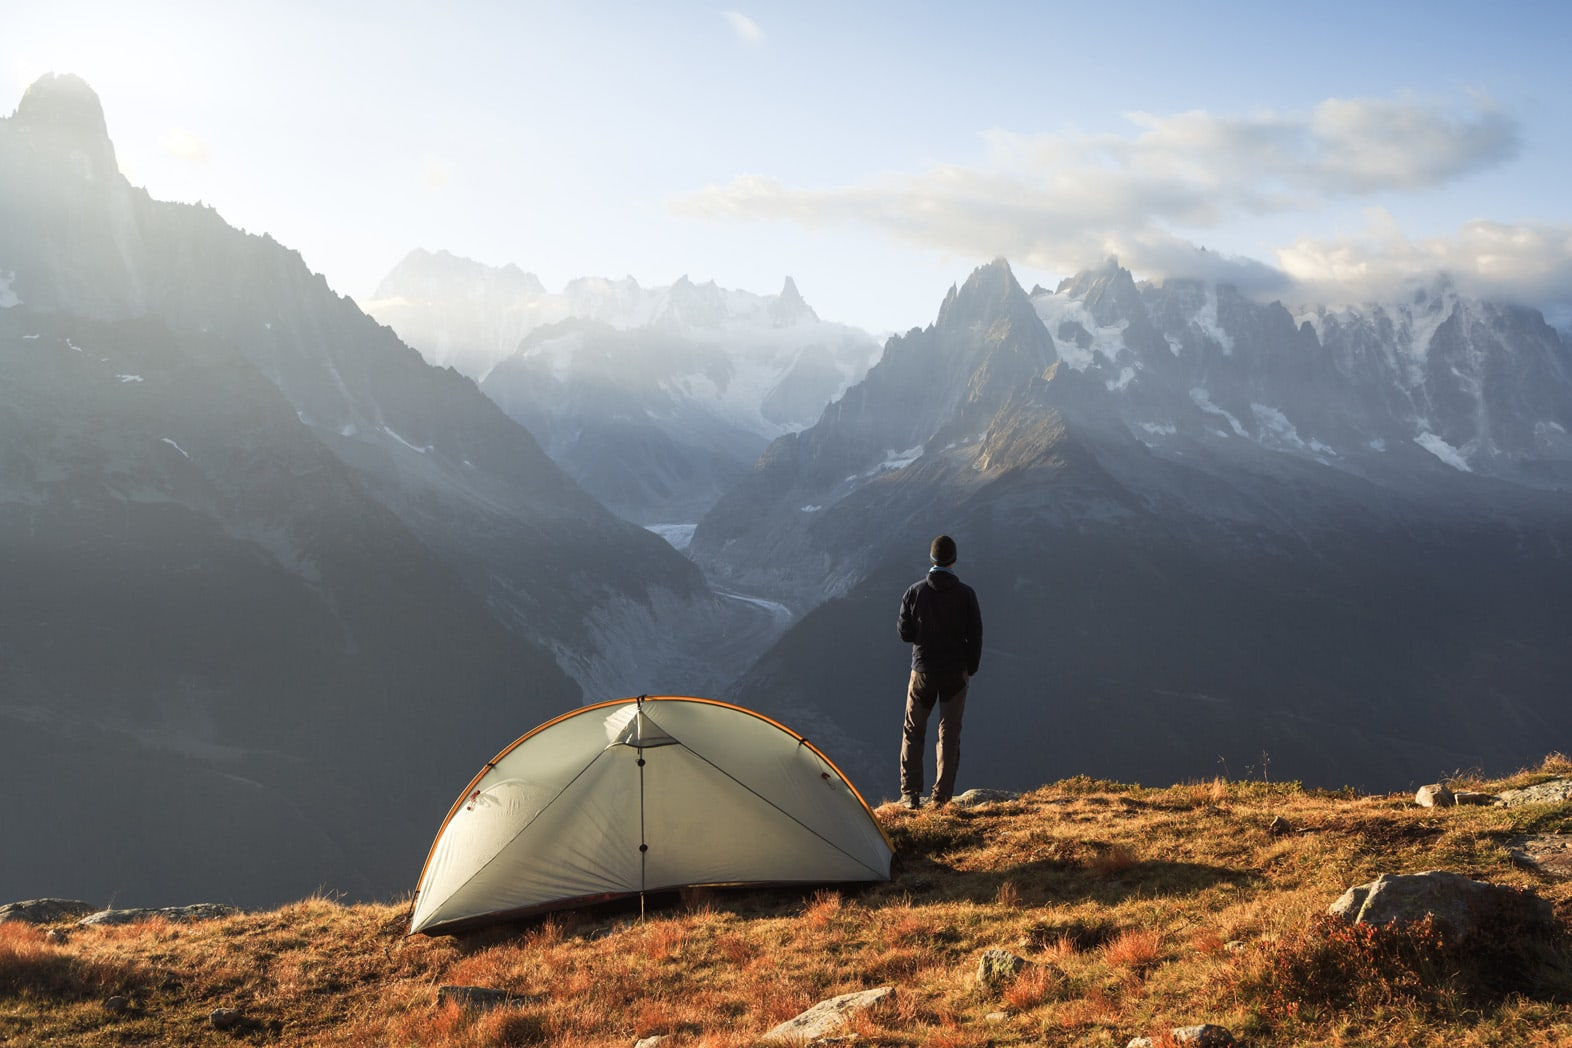 The 10 Best Backpacking Tents: How to Choose the Right One for You